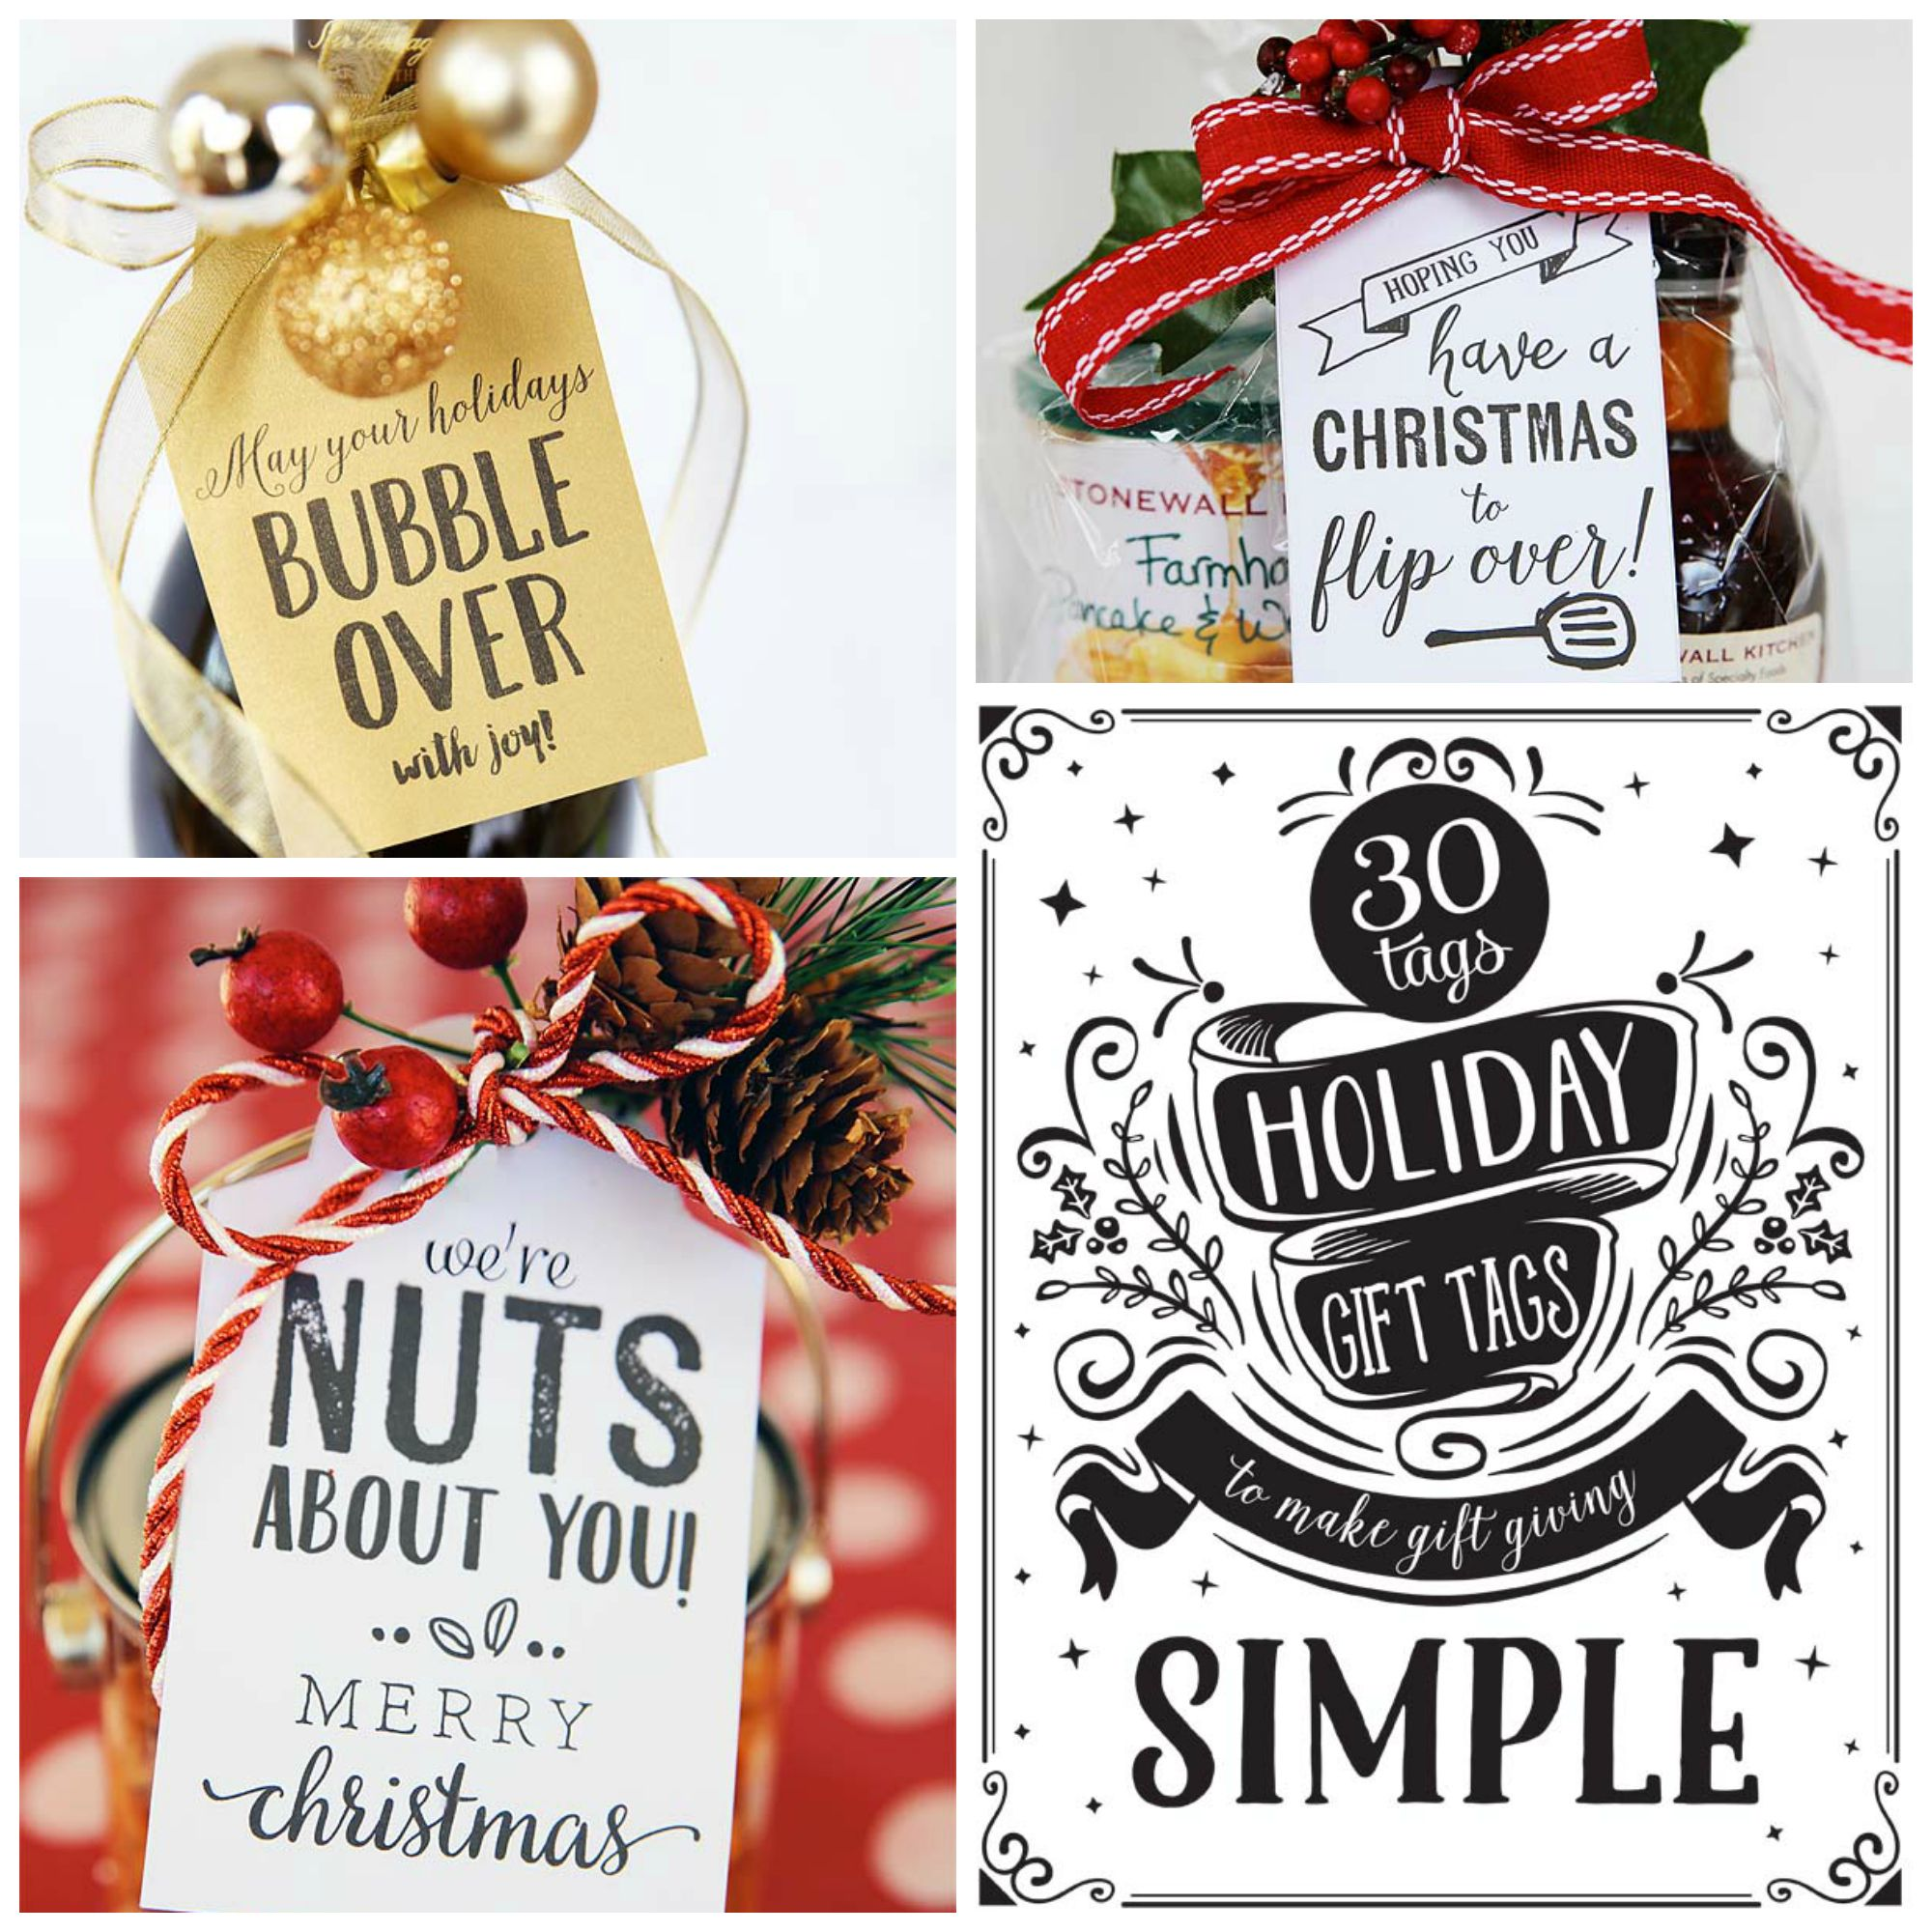 50 Gifts Under 5 Great Stocking Stuffer Ideas Homemade Christmas Gifts Christmas Cheap Diy Christmas Gifts